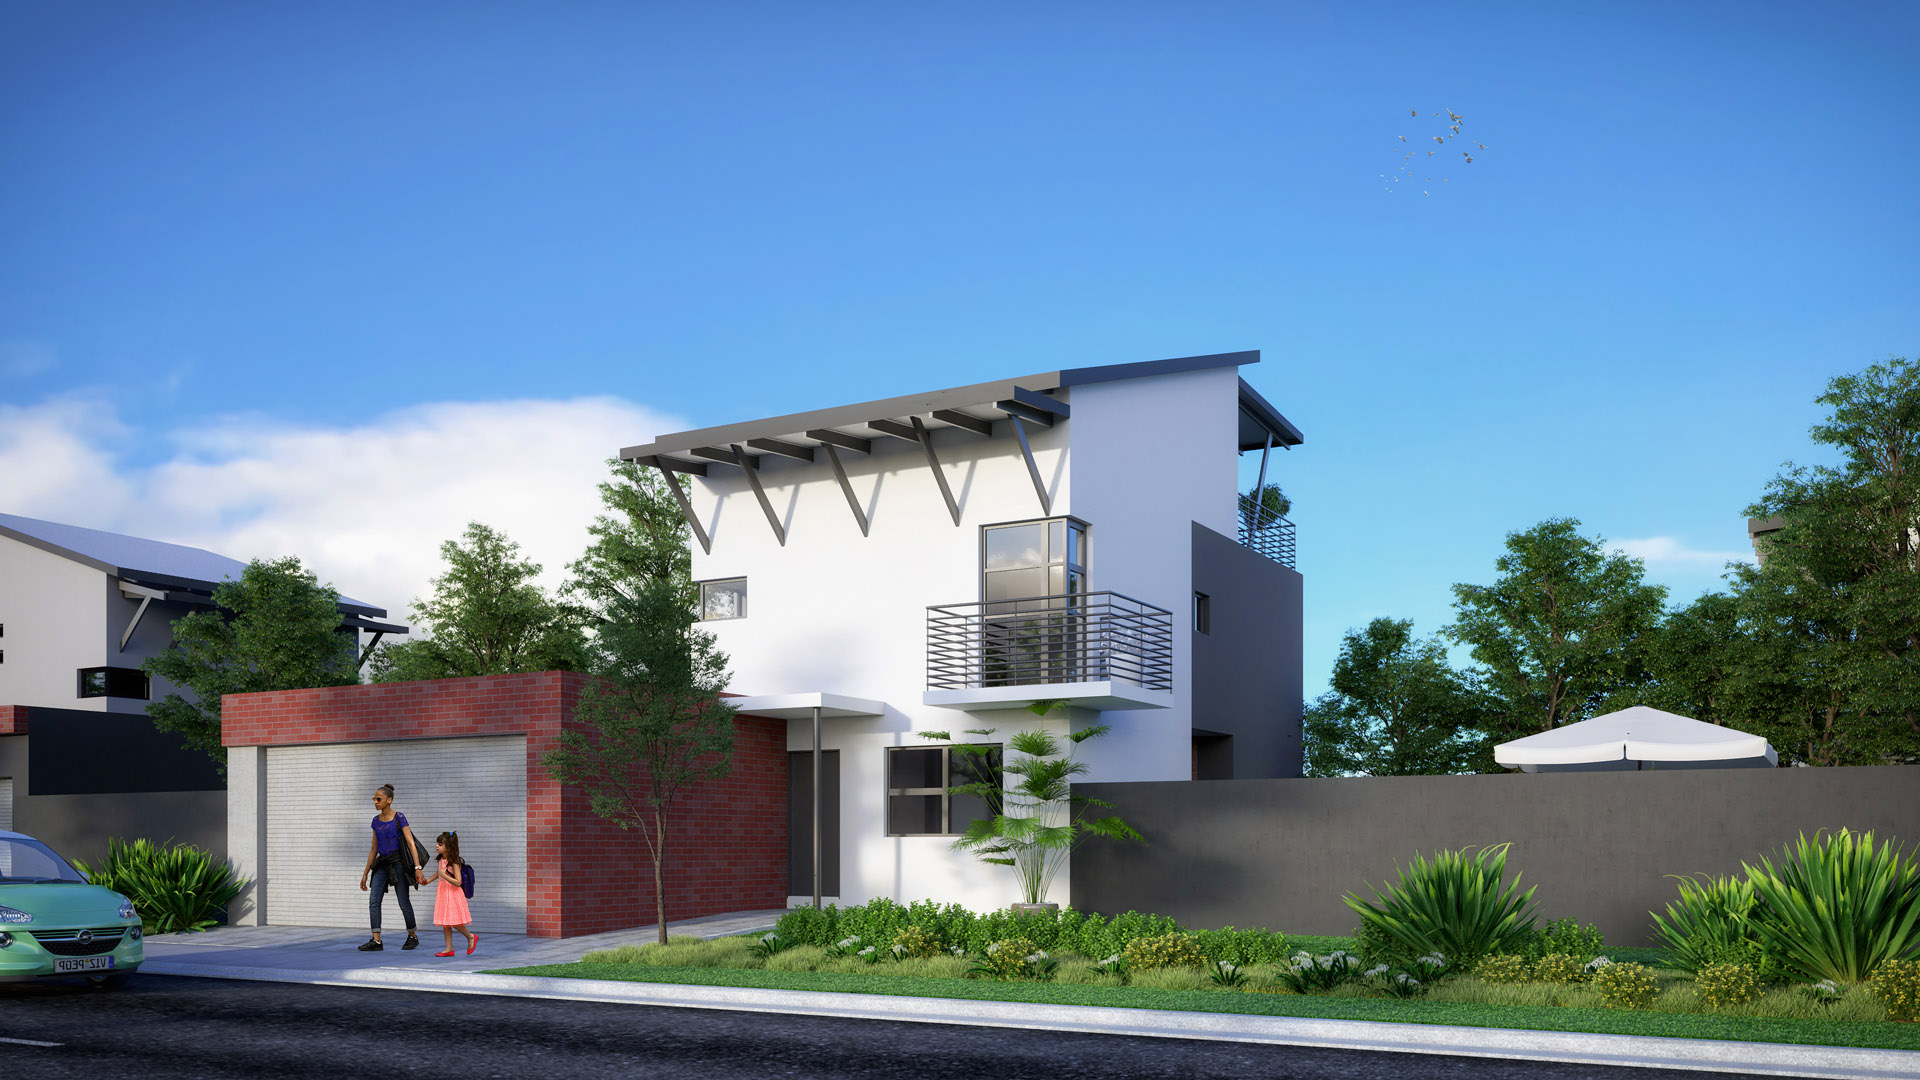 URBAN HOME DOUBLE STOREY 4 BEDROOMS + 3 BATHROOMS